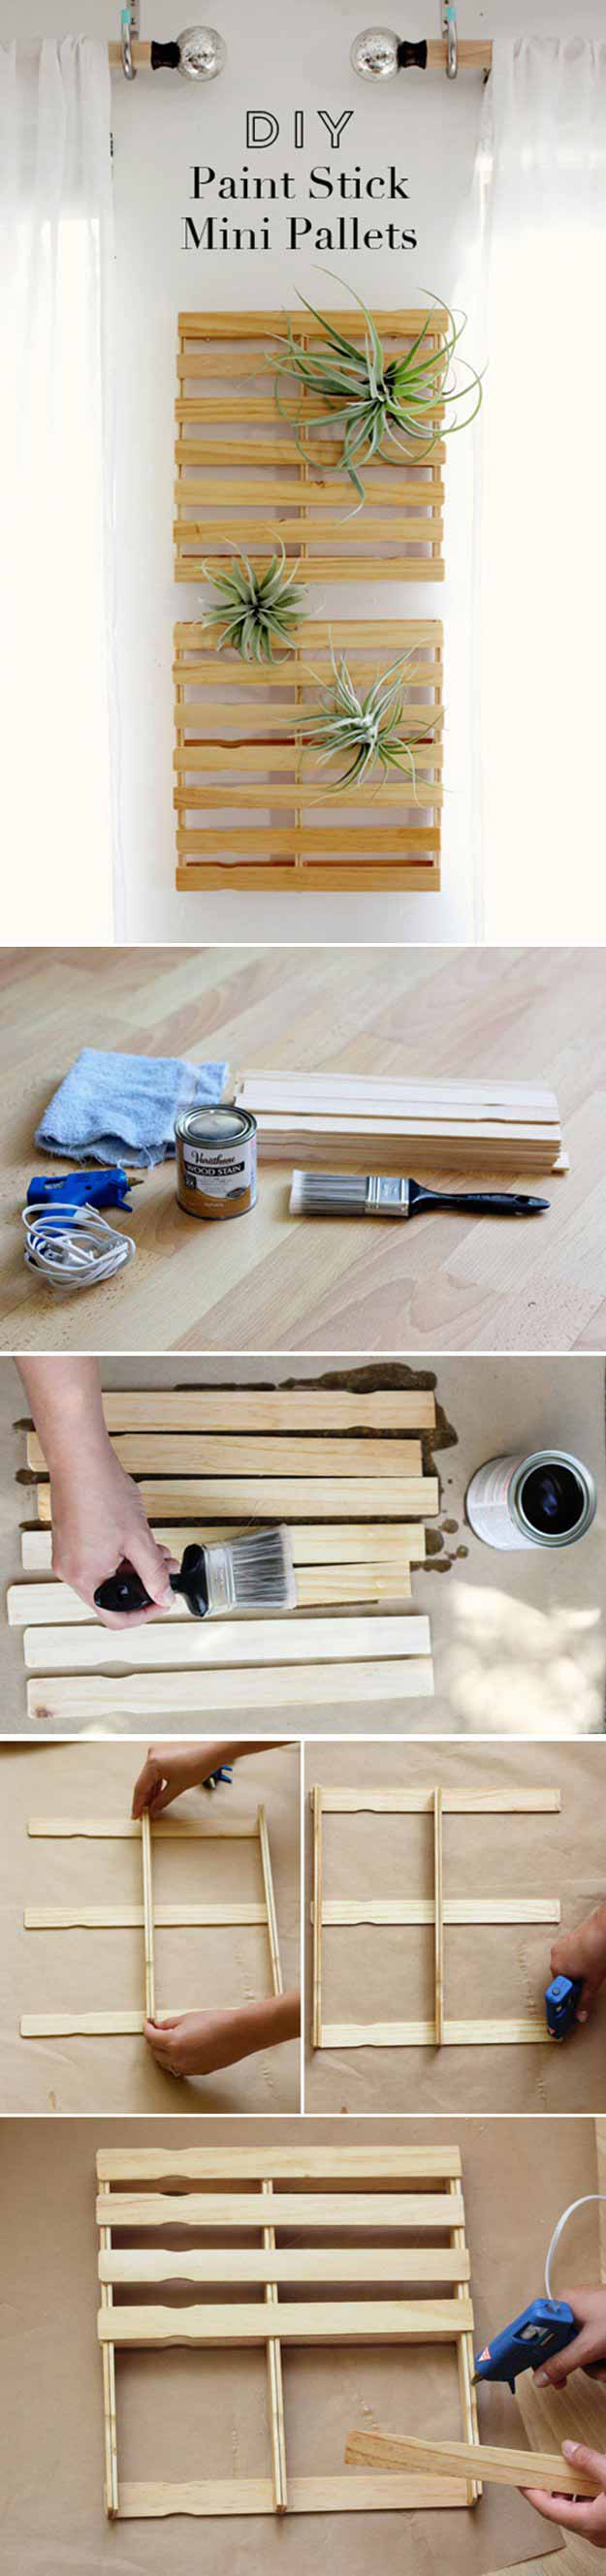 DIY Paint Stick Mini Pallets | 17 Amazing DIY Paint Chip Projects